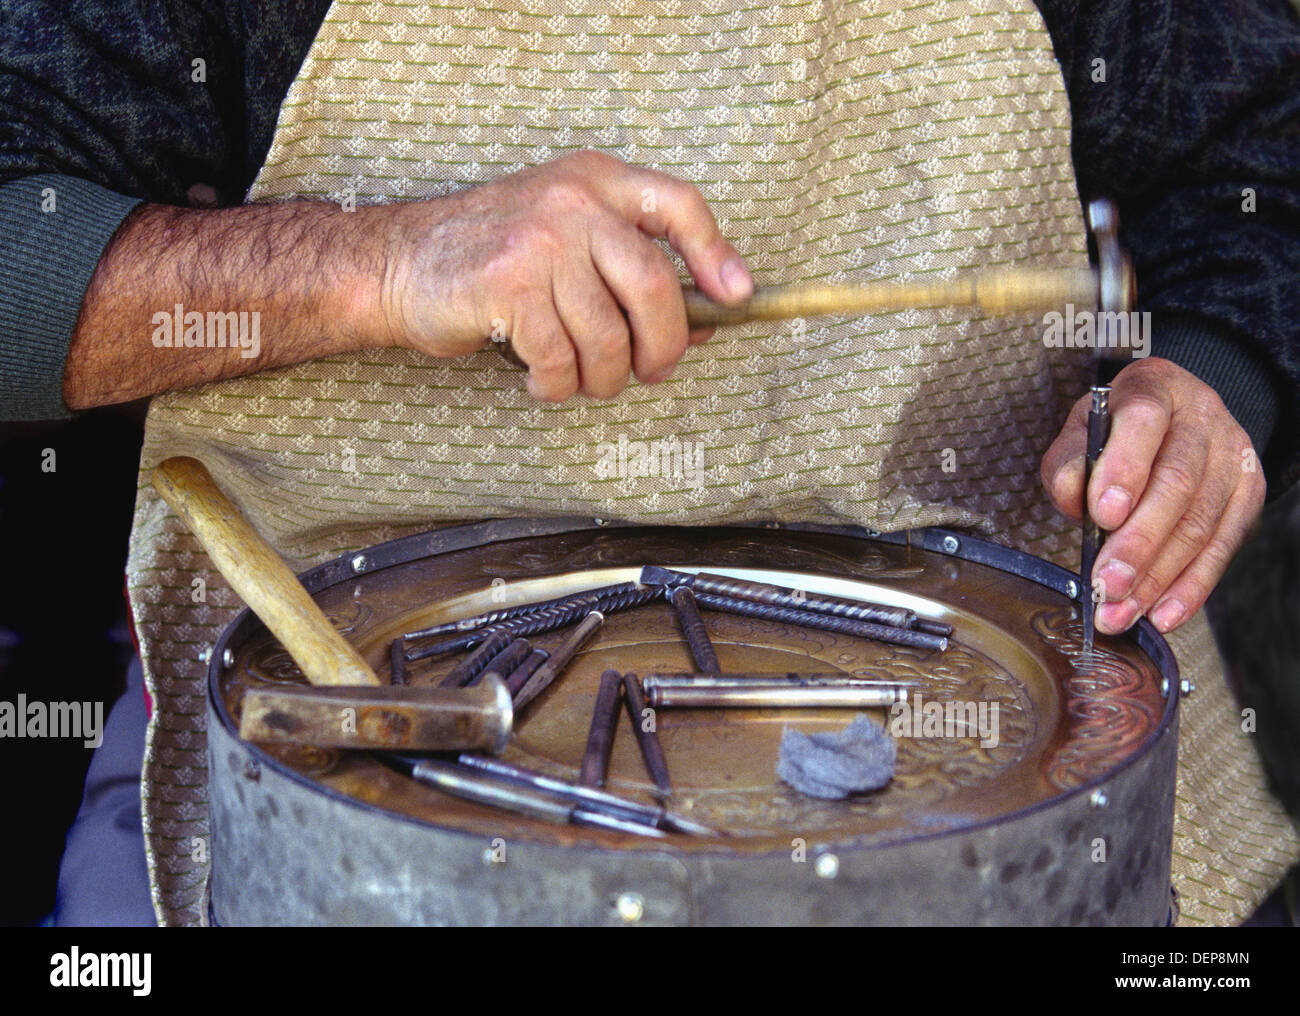 Chiseller Making a Brass Plate. - Stock Image